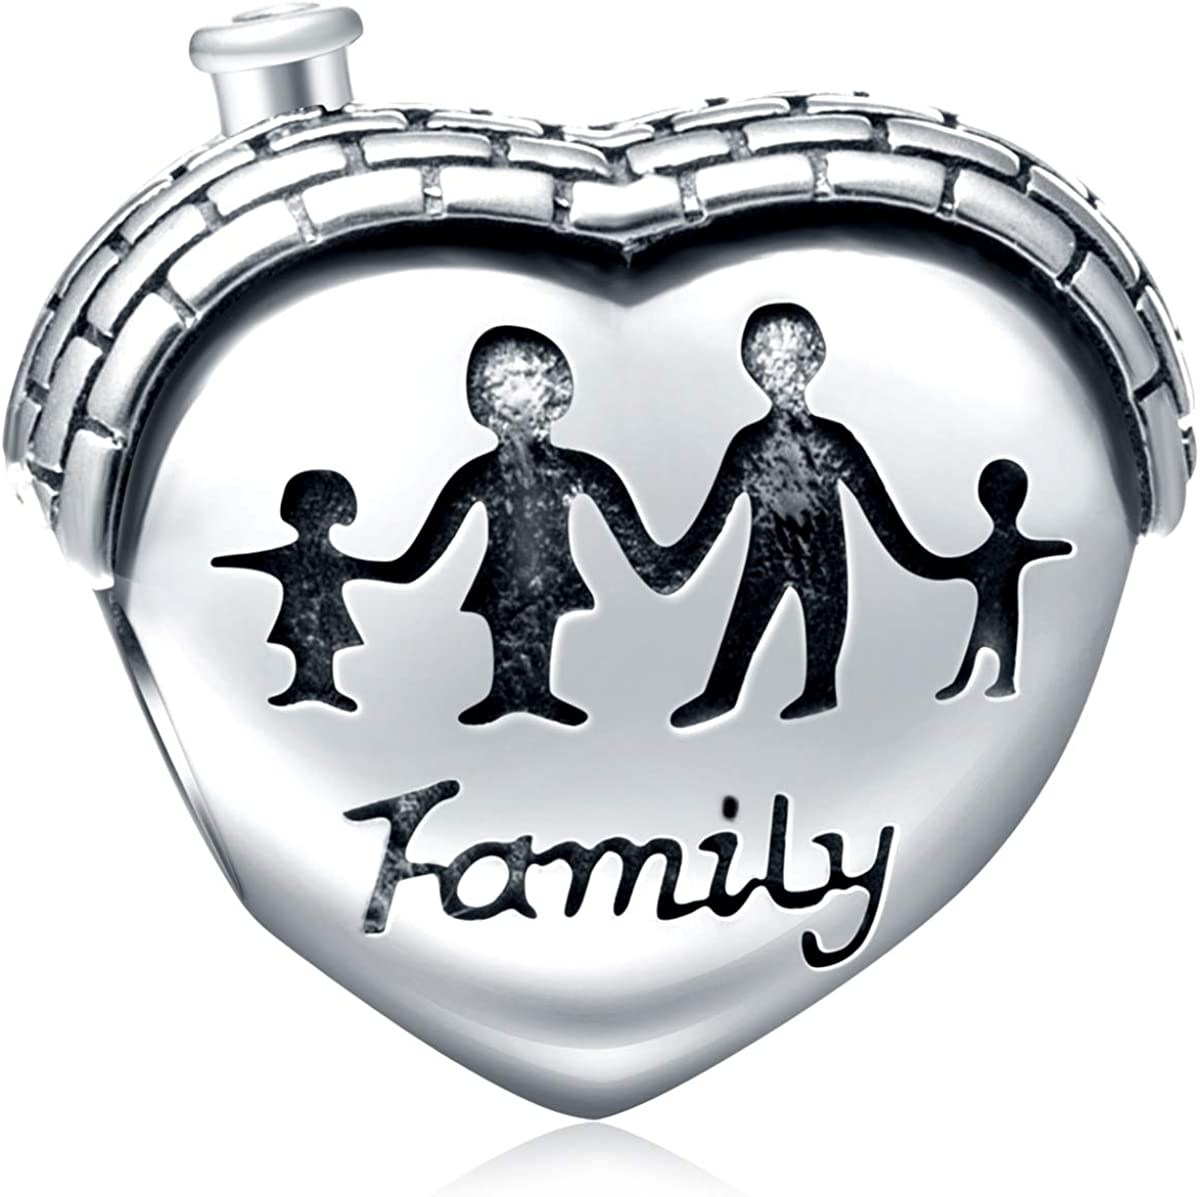 EMOSTAR Sterling Silver Family Charm House Charm Heart Shape Love Charm Family Hand Charm for Bracelets